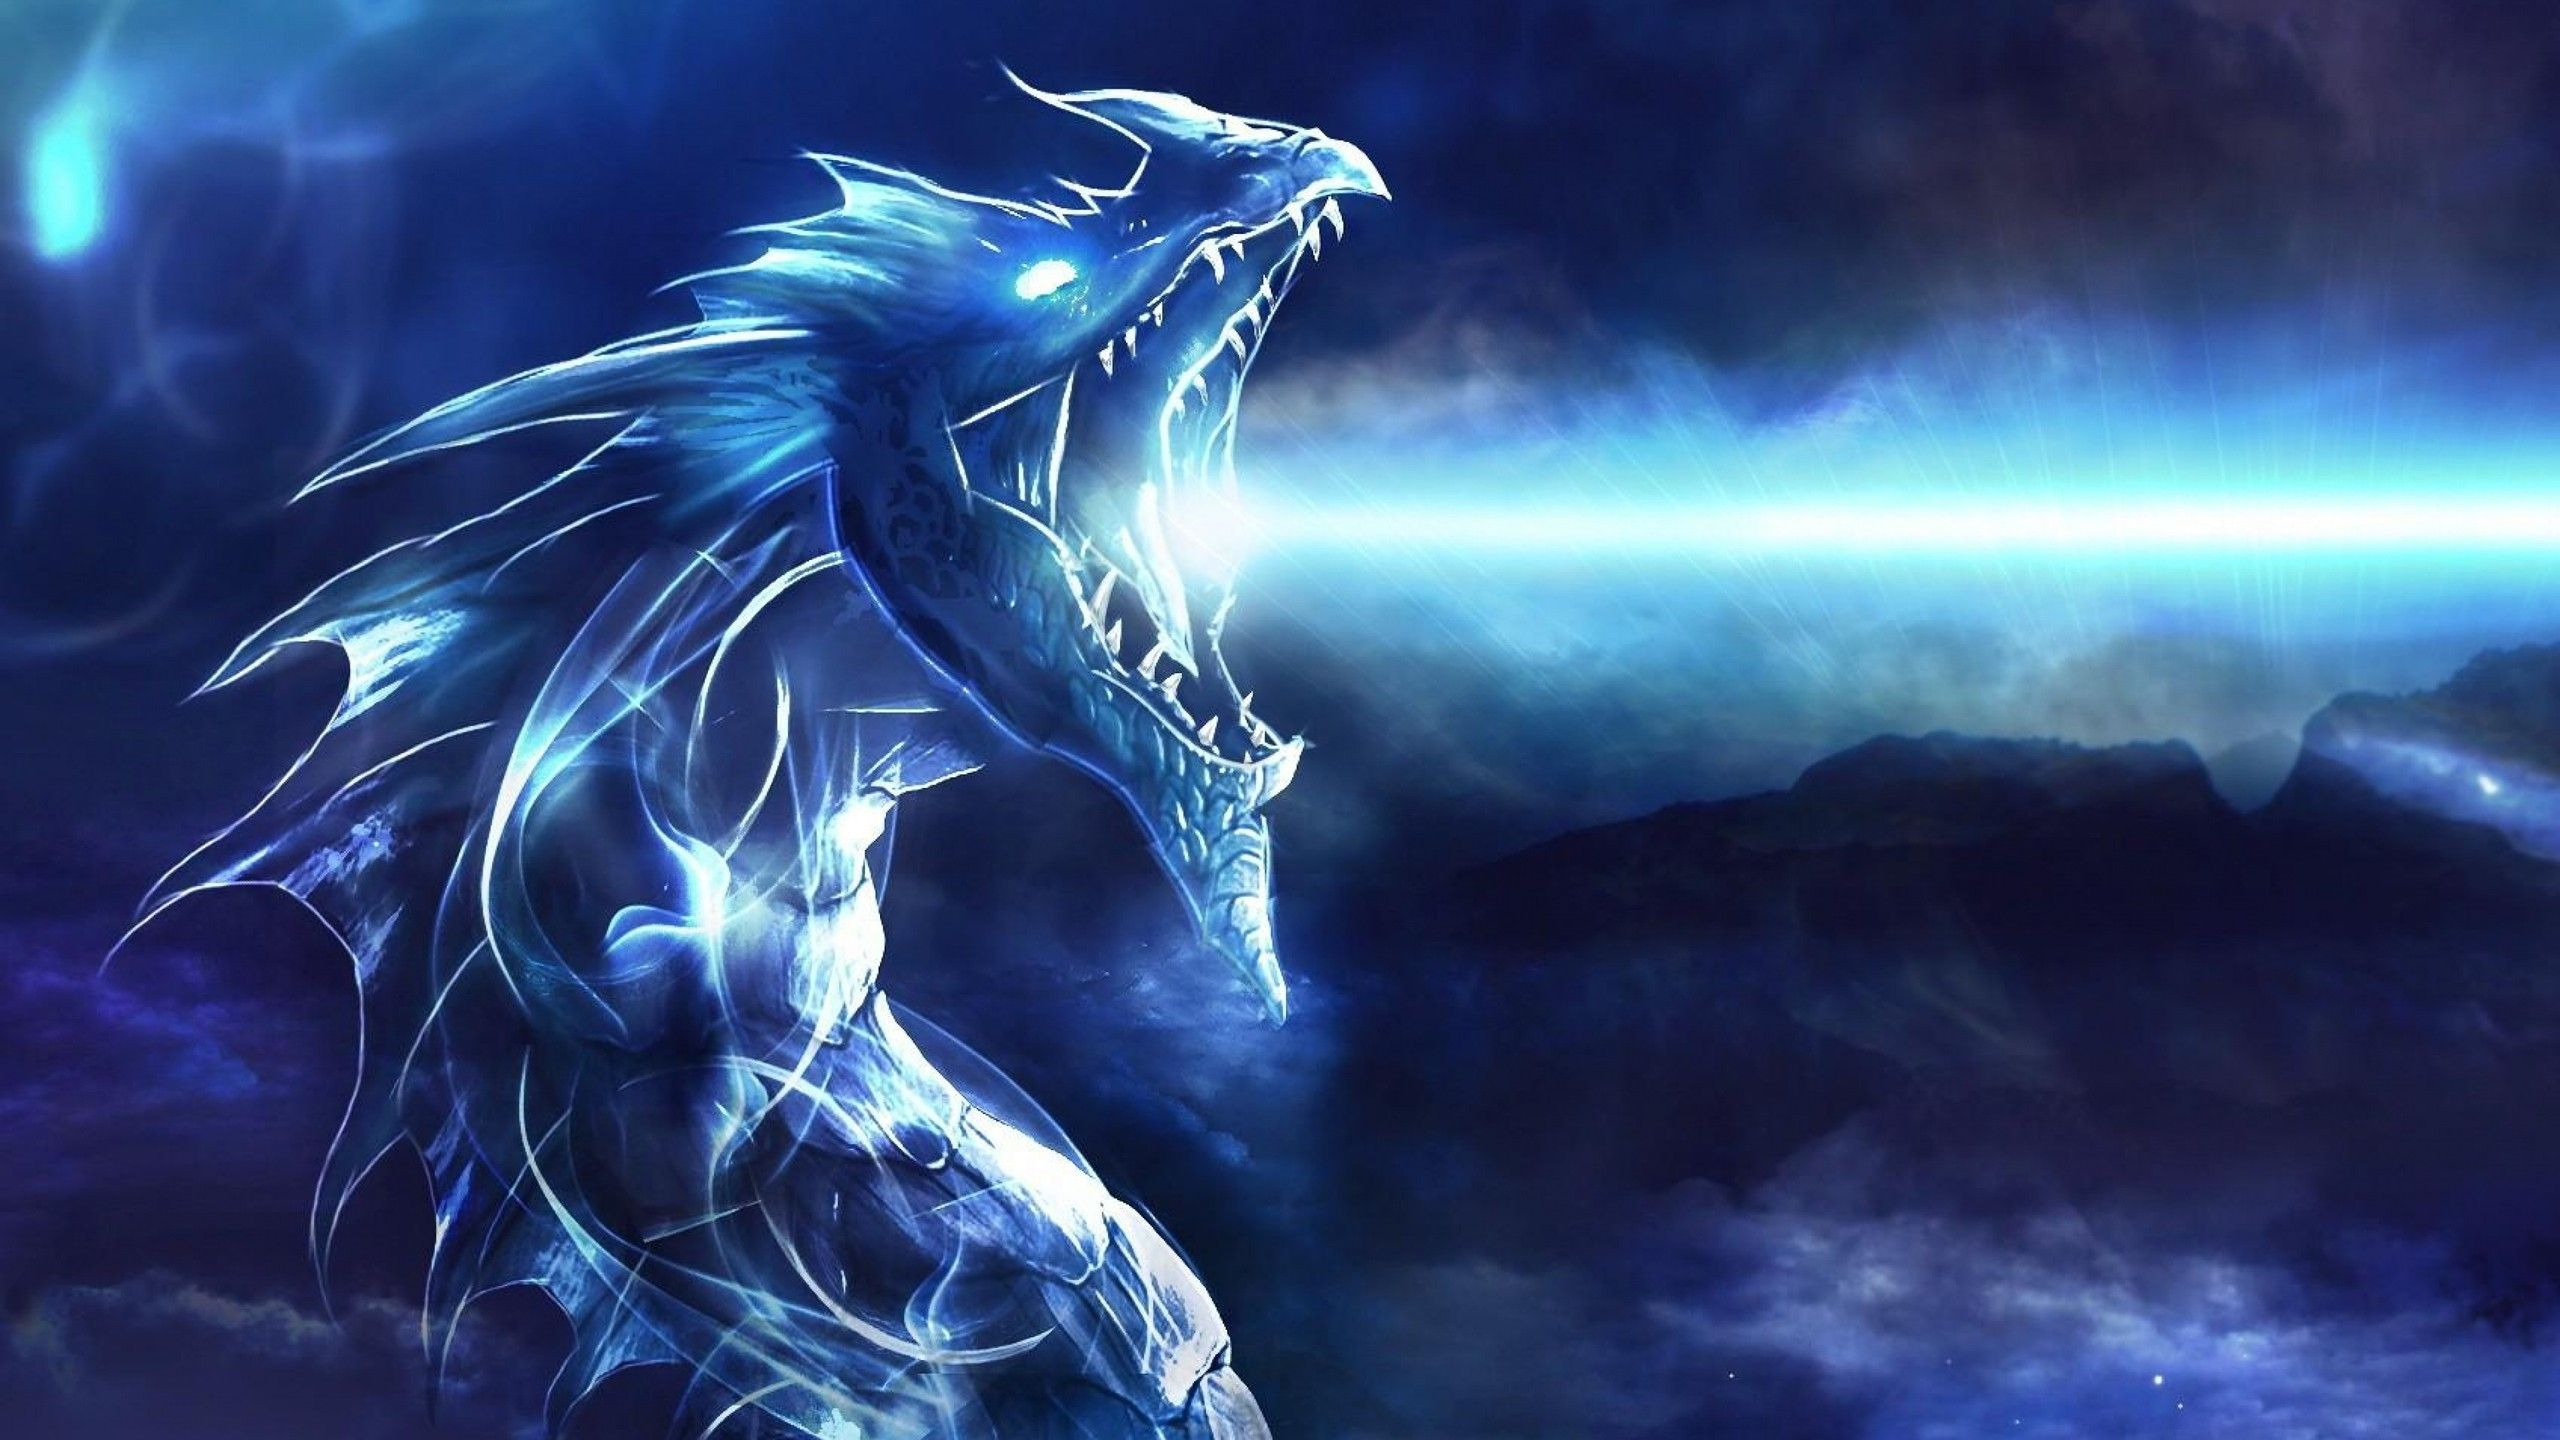 2560x1440 2560x1440 Blue Dragon 1440P Resolution HD 4k Wallpapers, Images ...